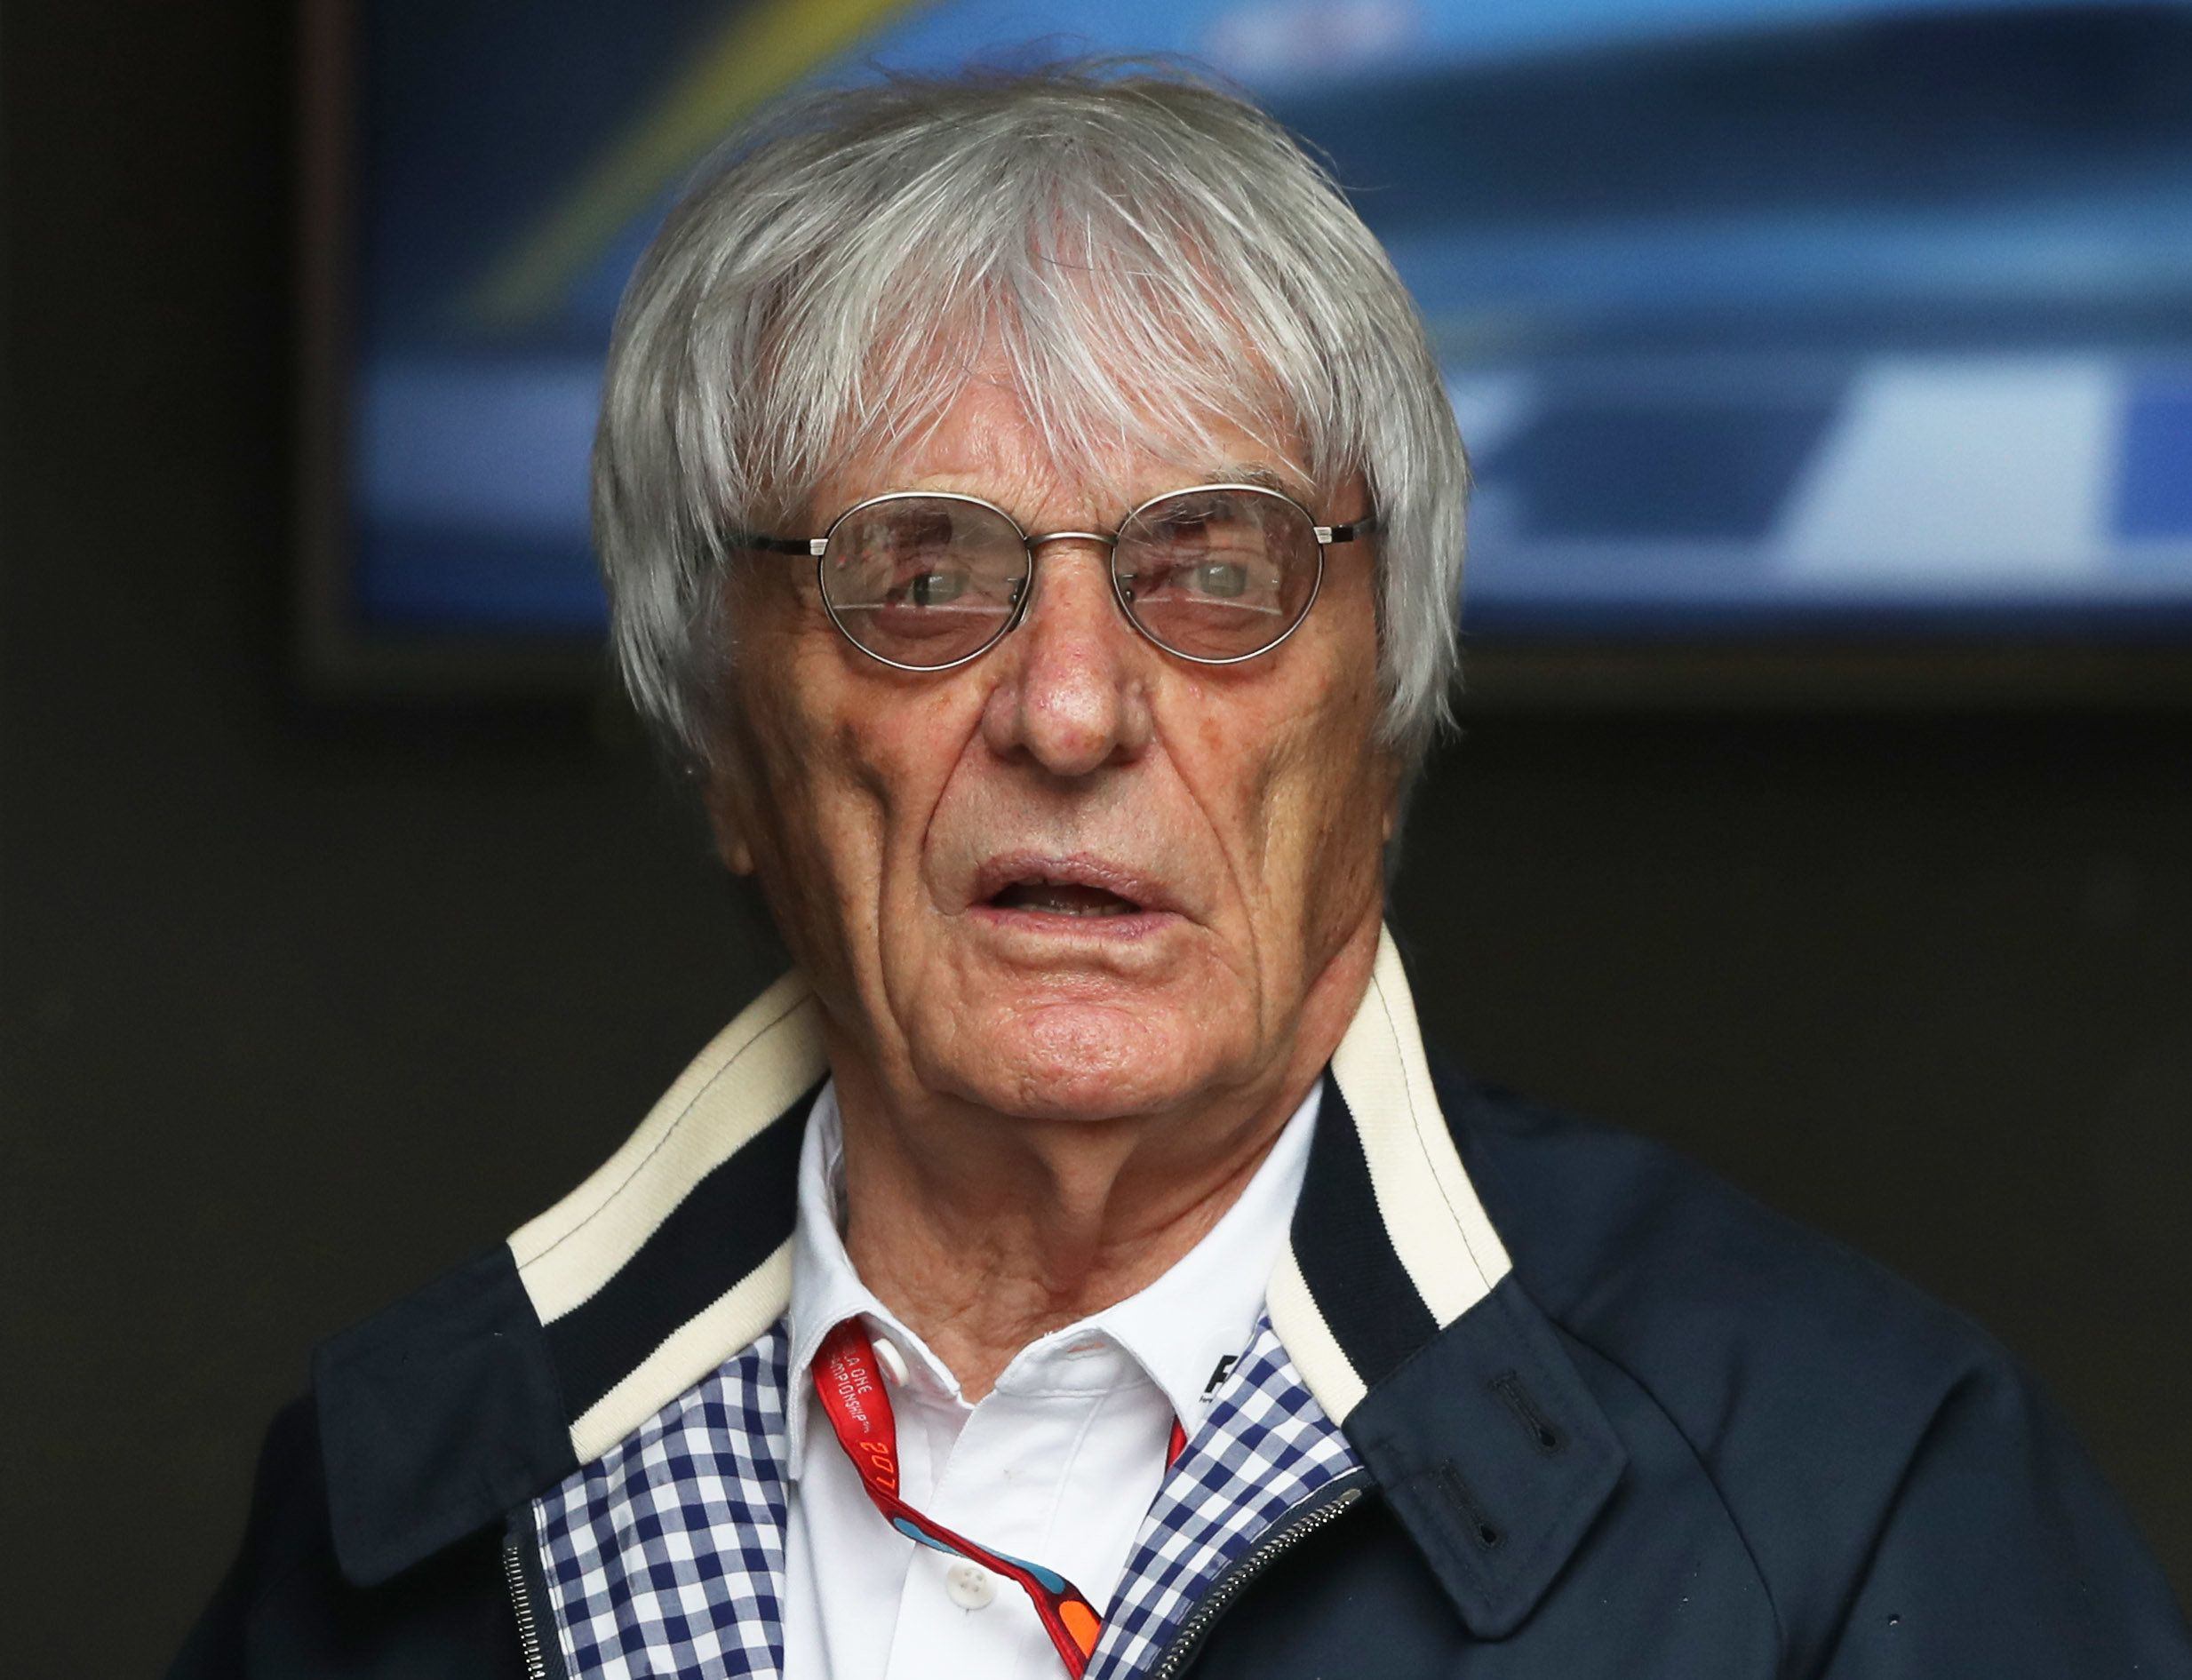 Britain Formula One - F1 - British Grand Prix 2016 - Silverstone, England - 10/7/16 President and CEO of Formula One Management Bernie Ecclestone before the race REUTERS/Matthew Childs Livepic EDITORIAL USE ONLY.